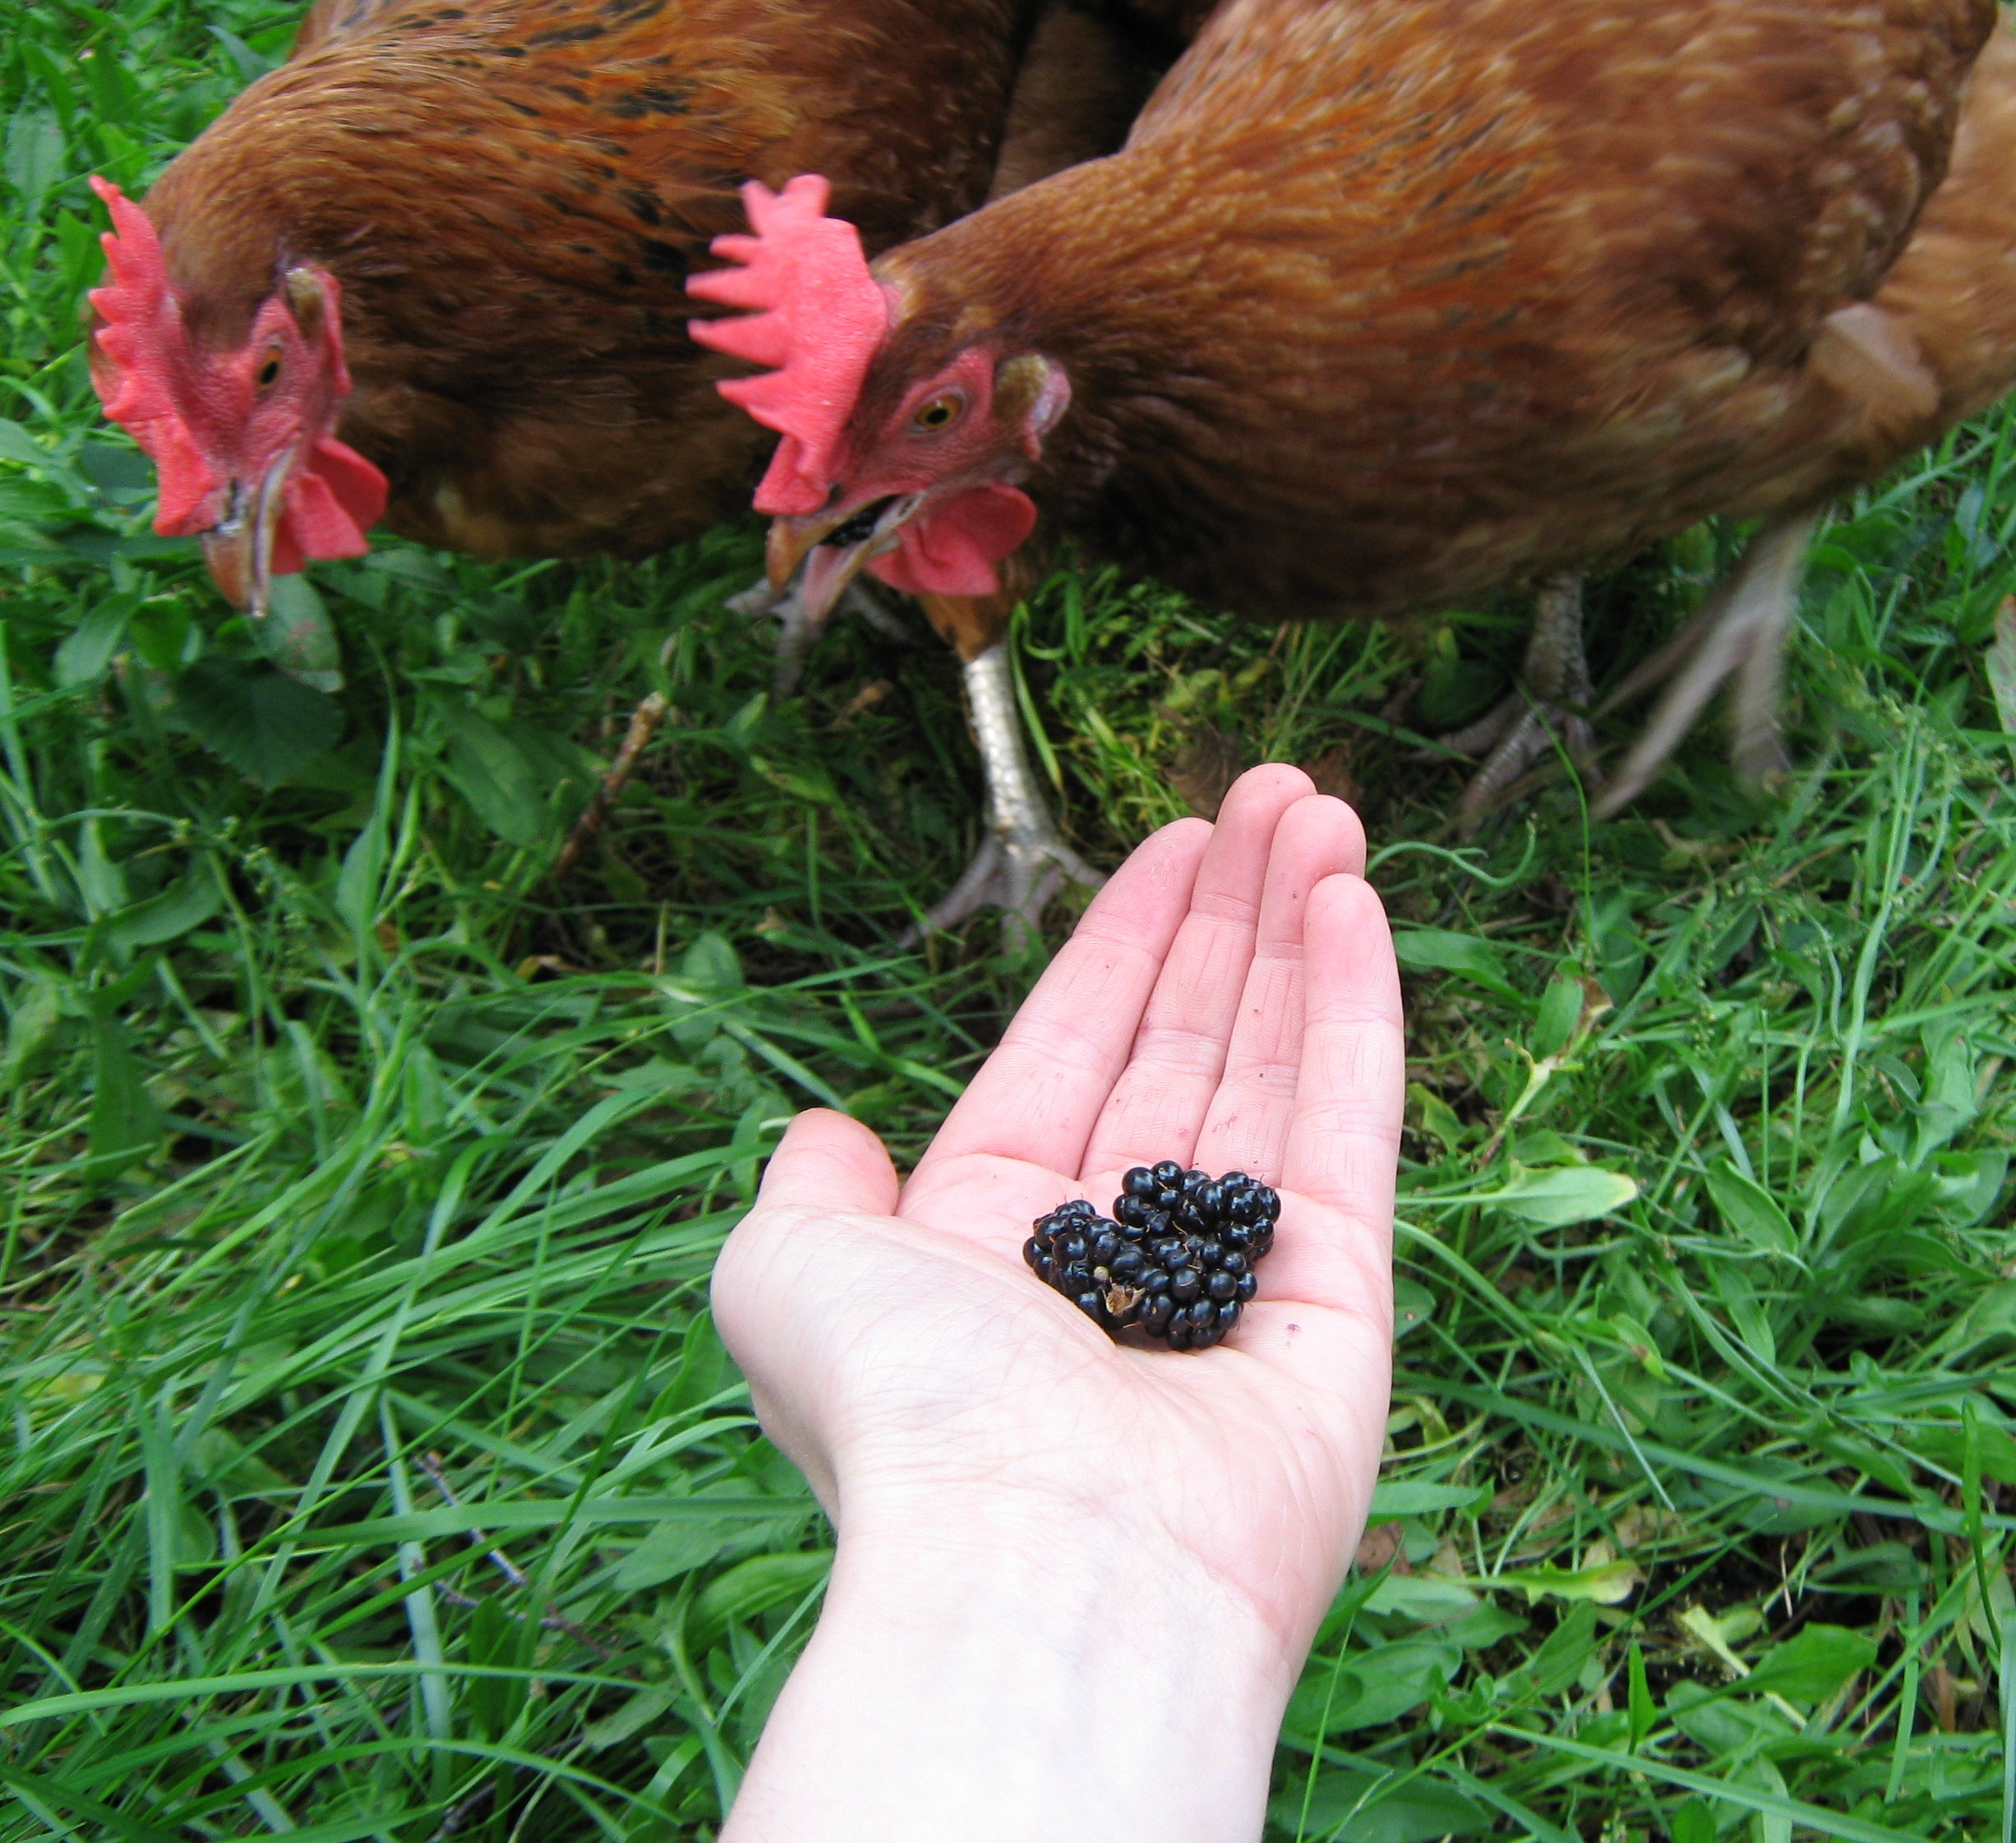 Jessica Umpleby's chickens love feeding on the fallen fruit in the garden